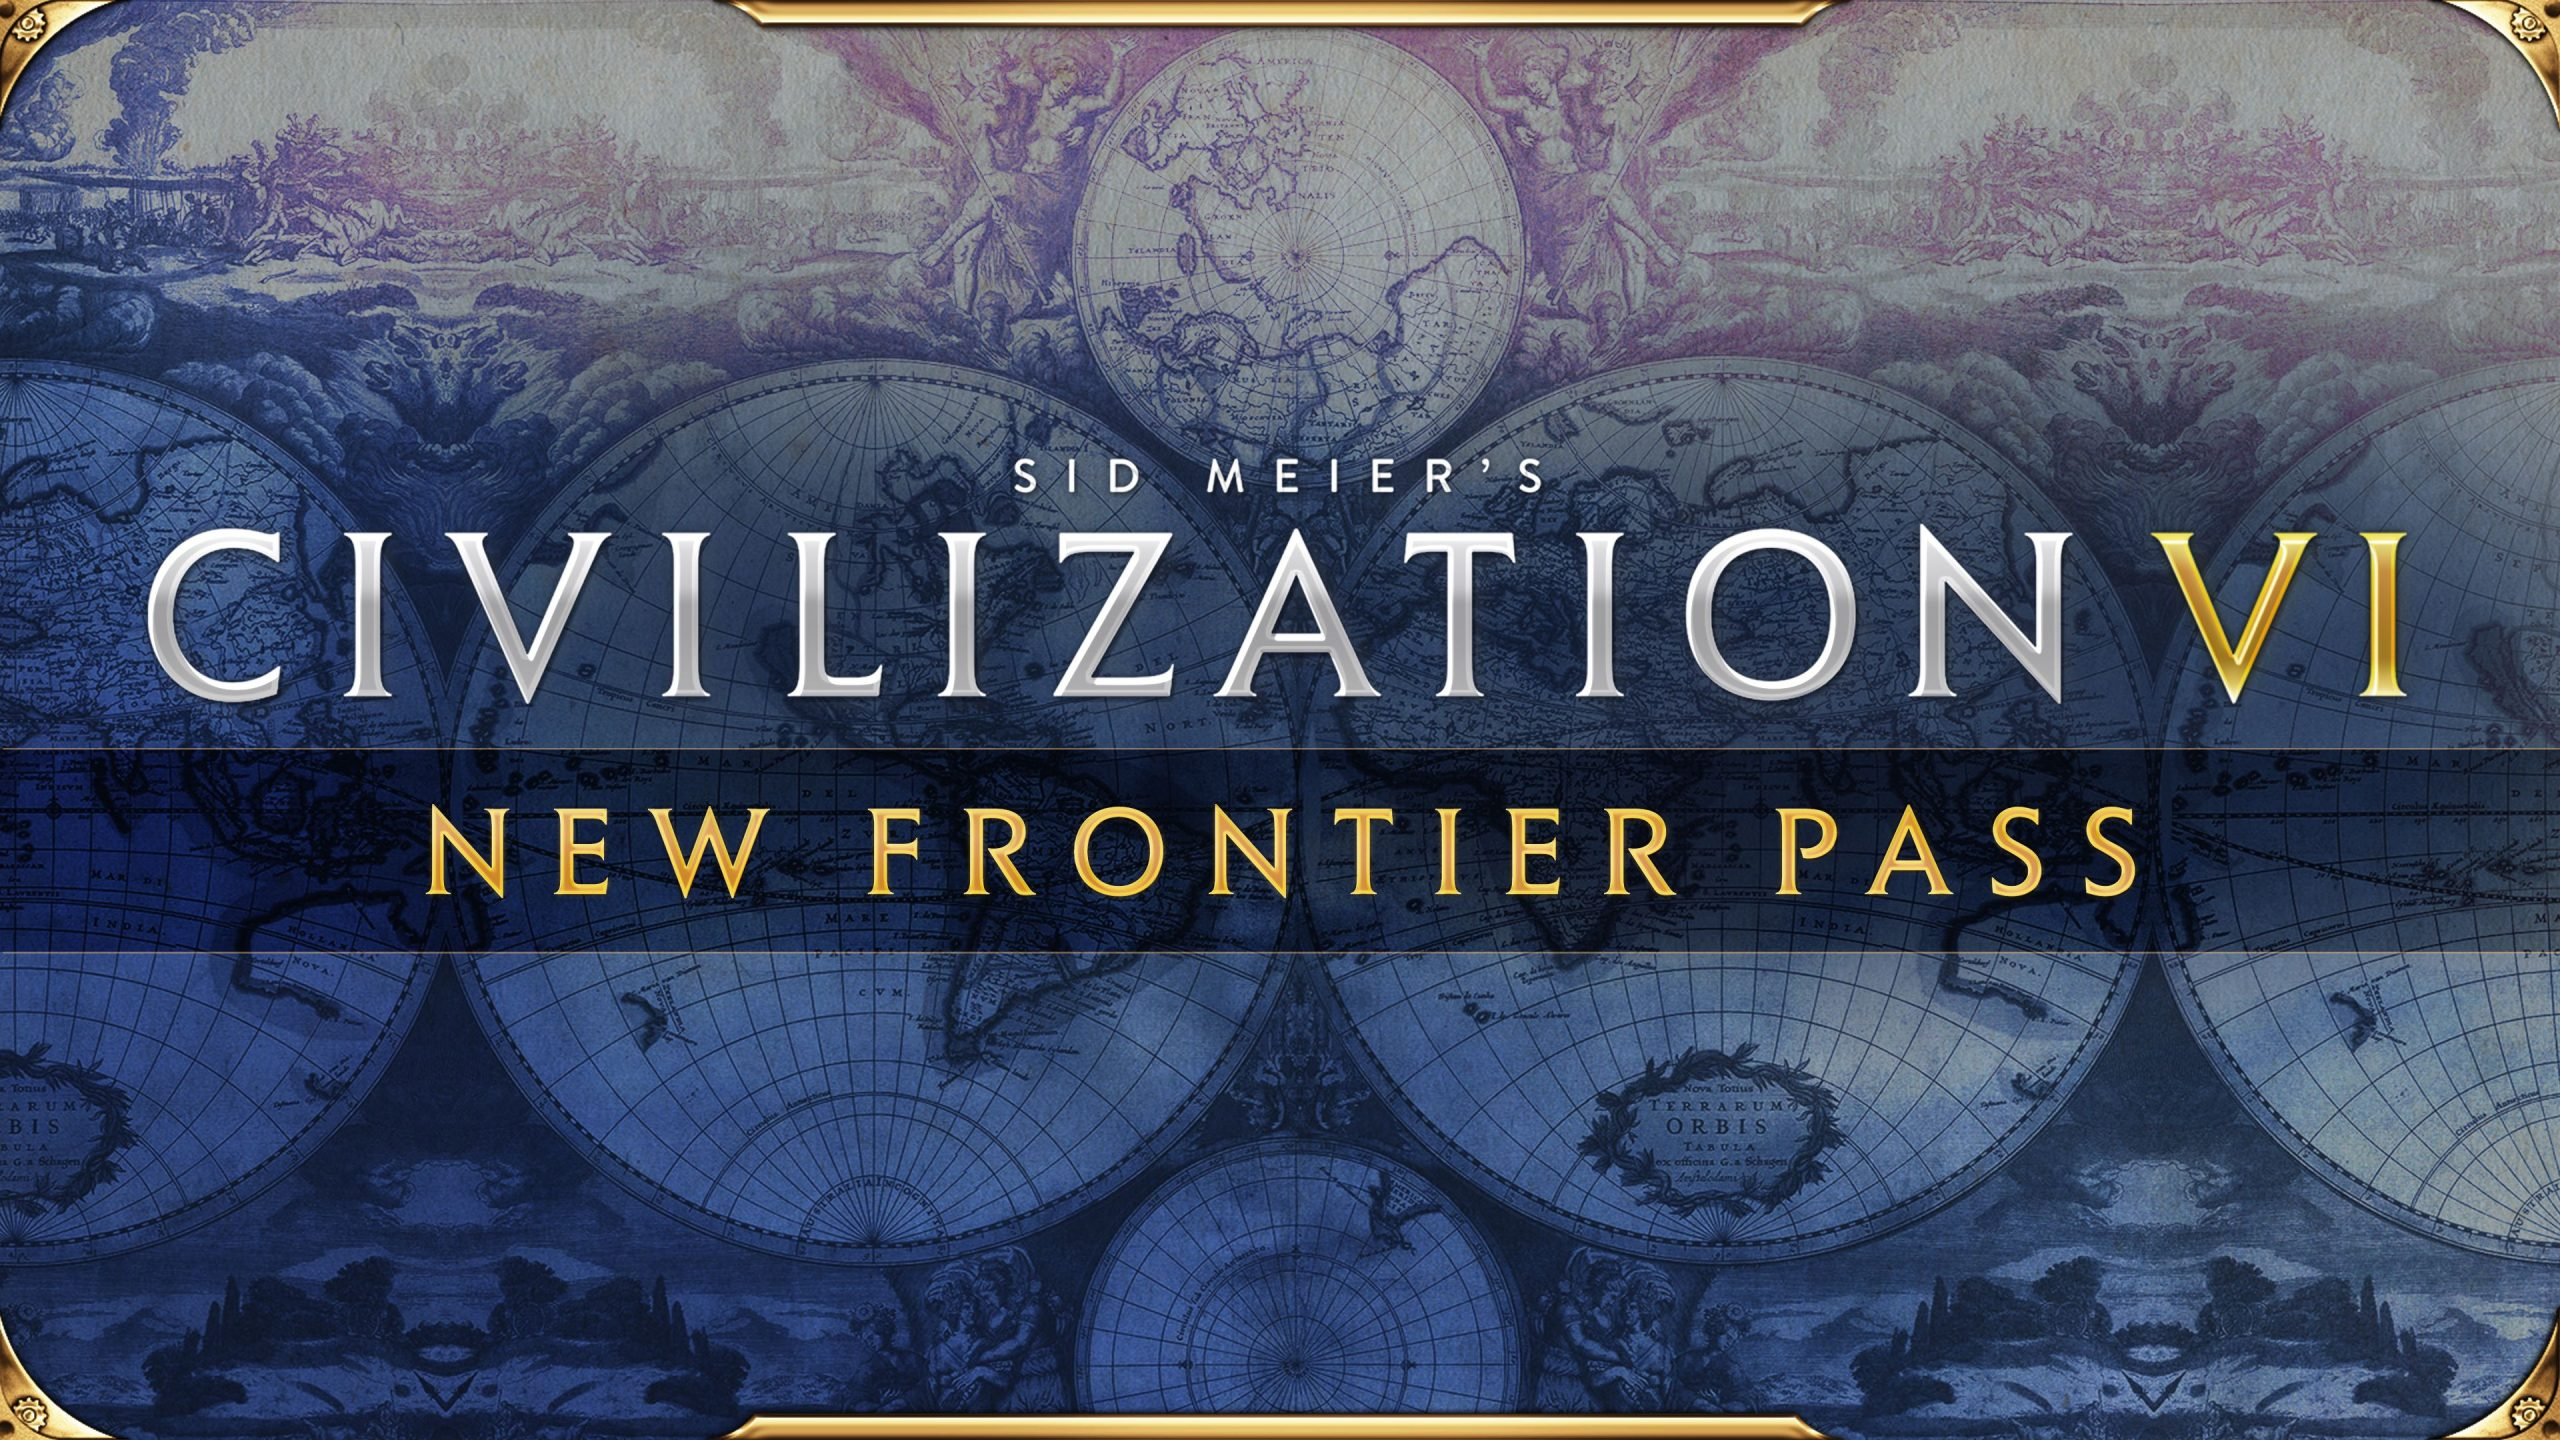 Sid Meier's Civilization VI New Frontier Pass logo